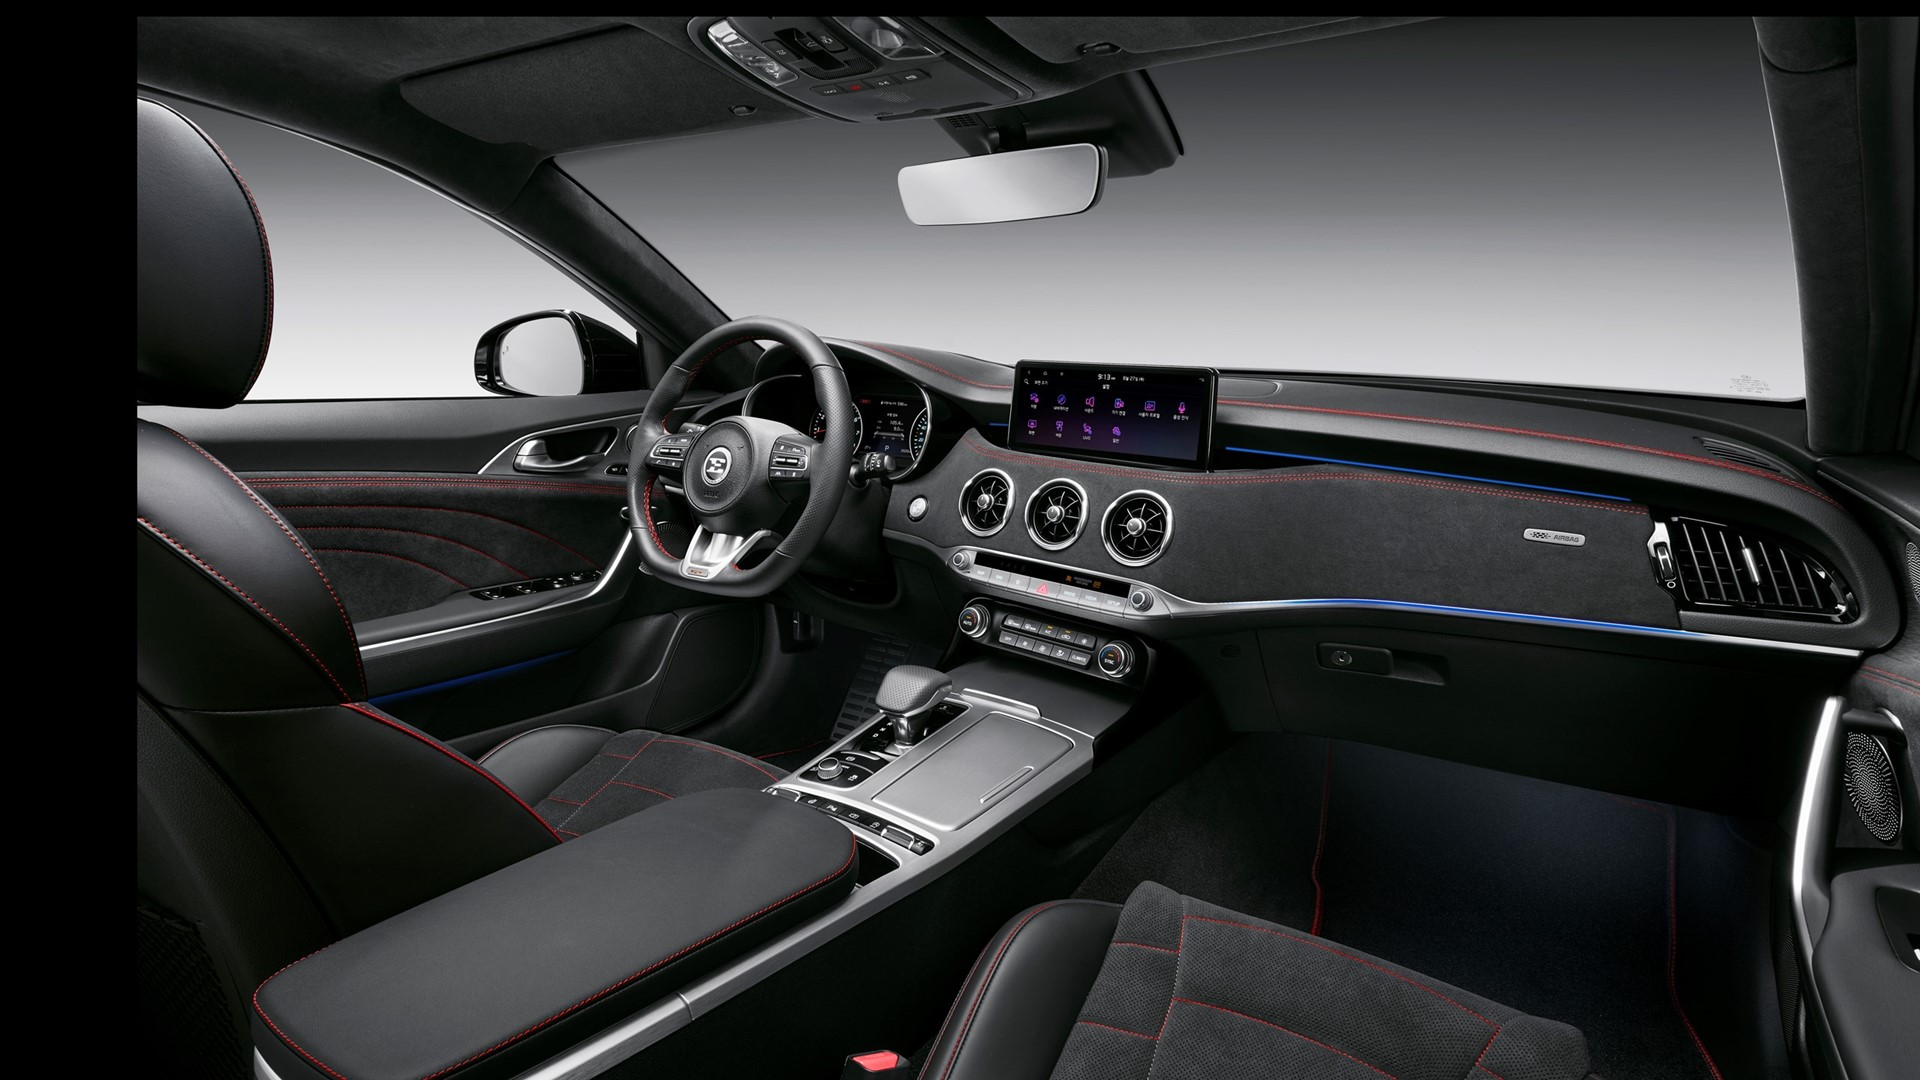 More tech, power and safety for upgraded Kia Stinger - Image 1